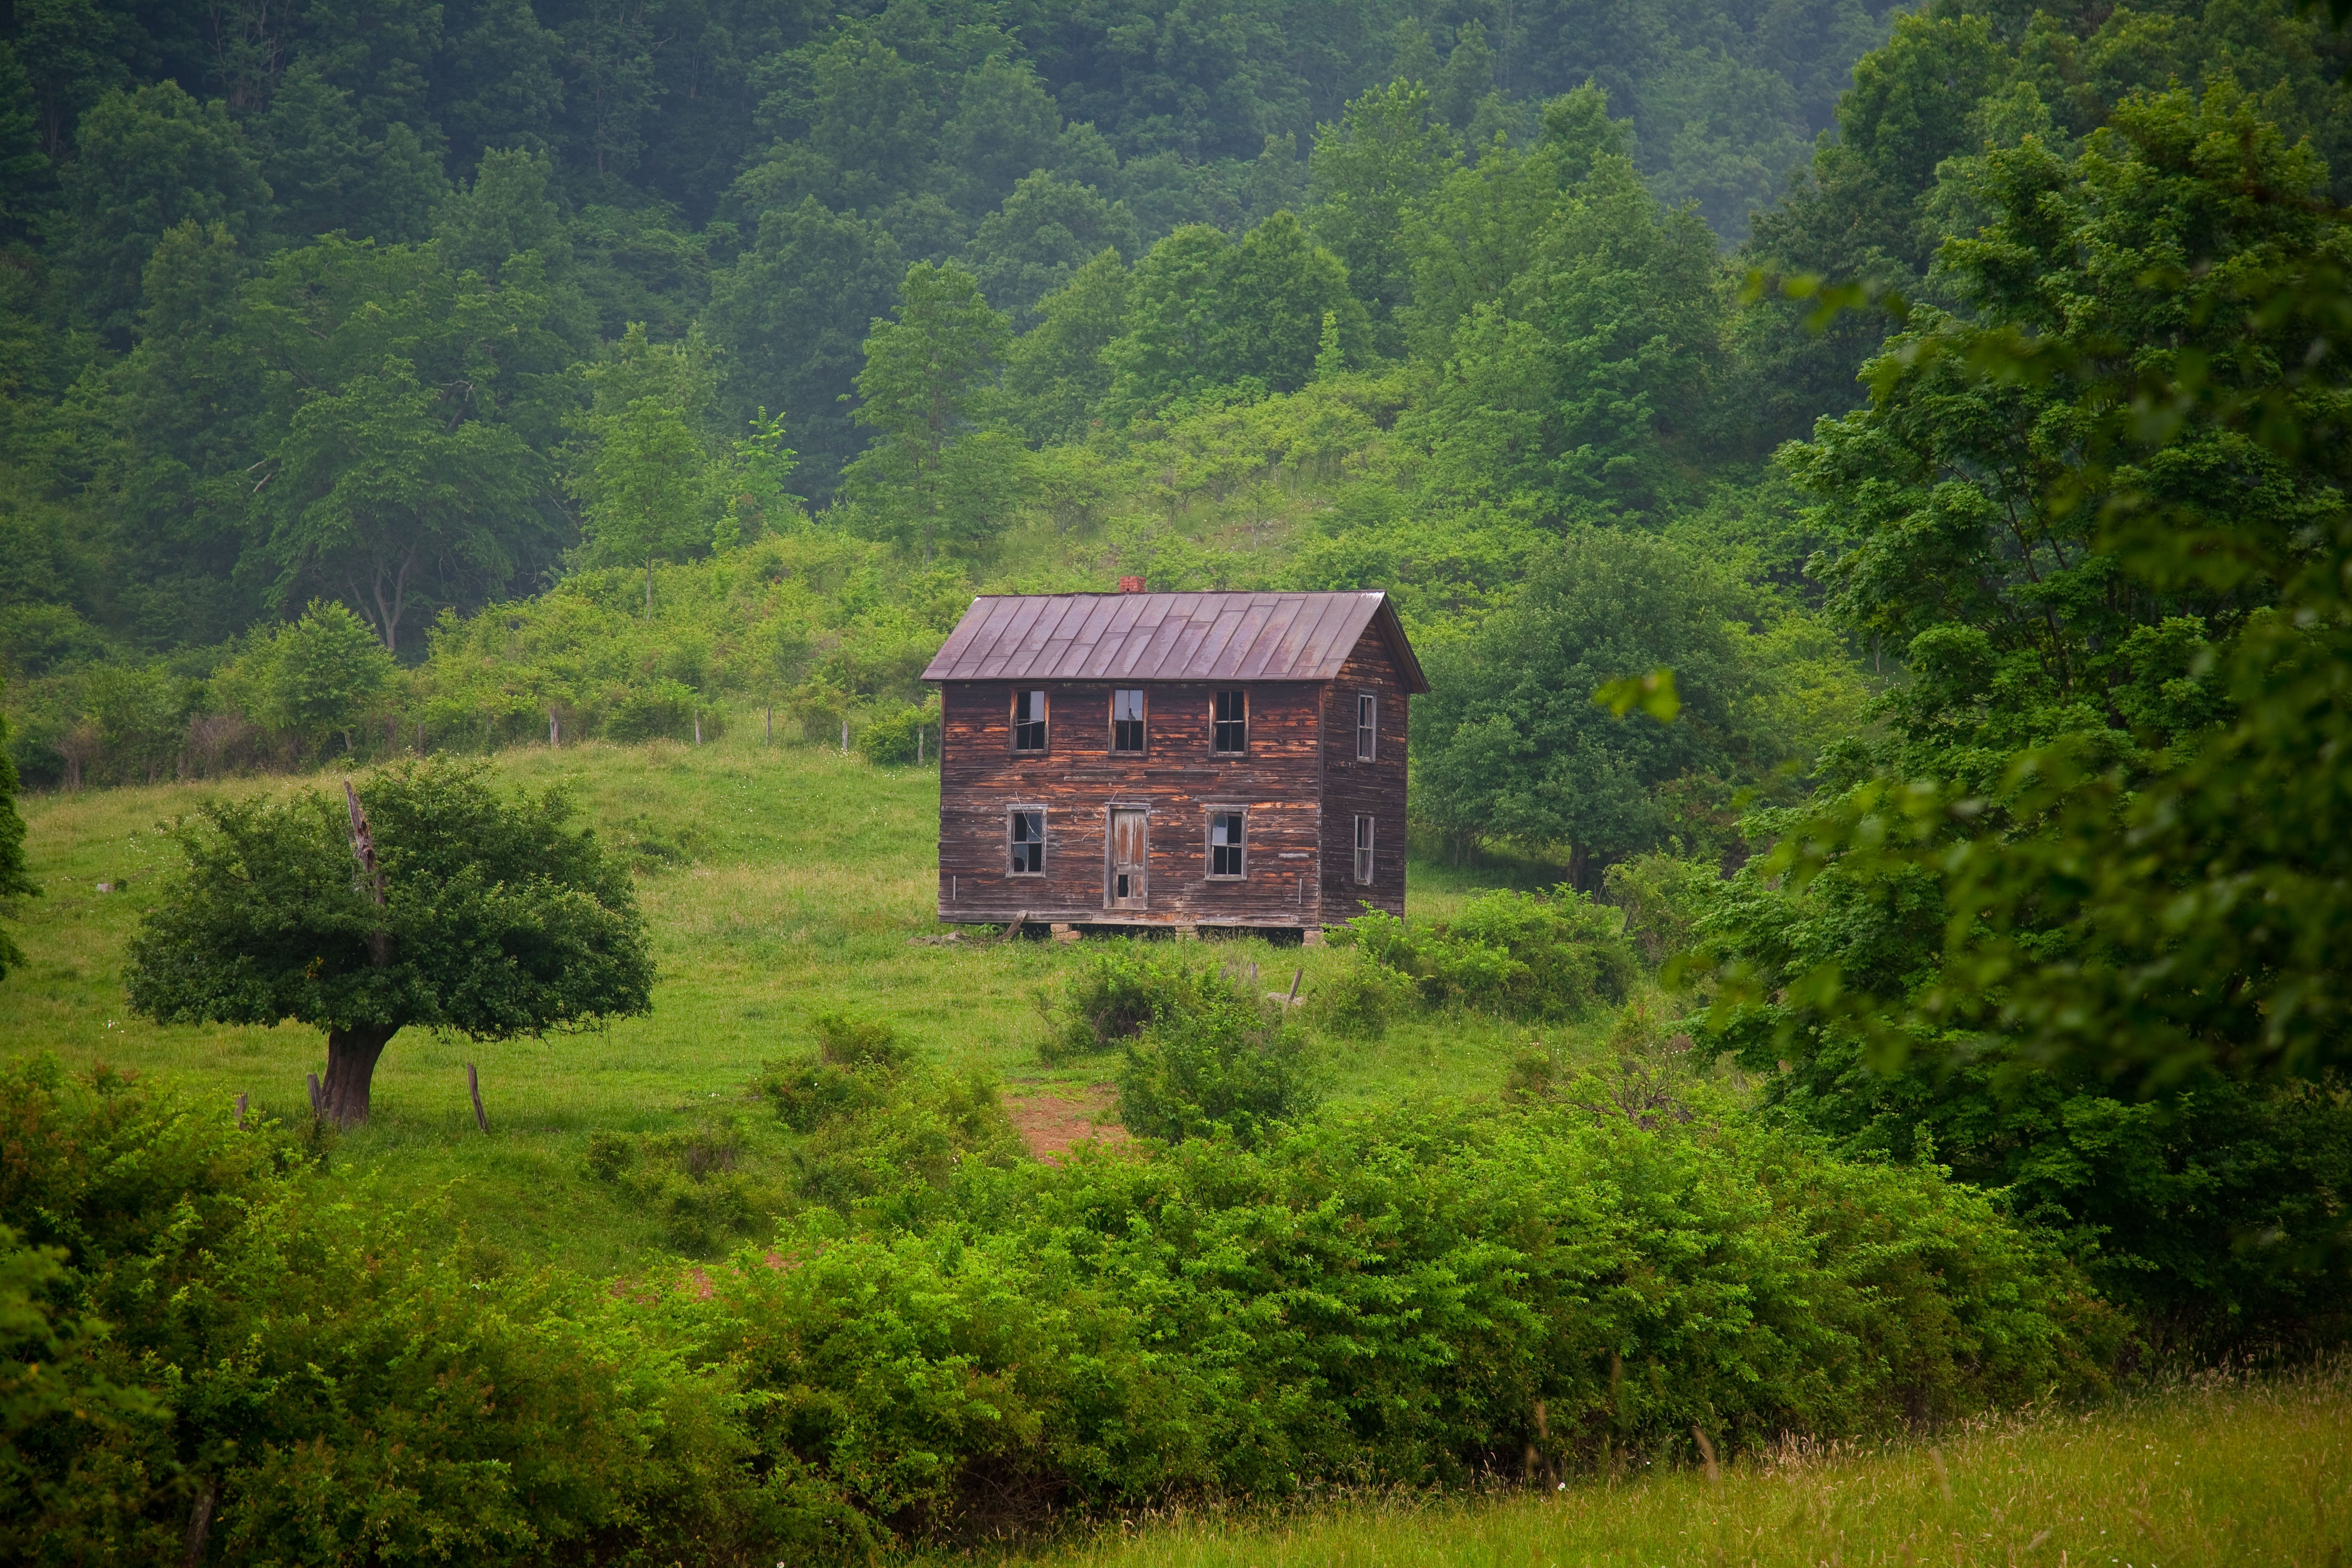 download Old Fashioned Summer Farm House Structures Nature 5616x3744